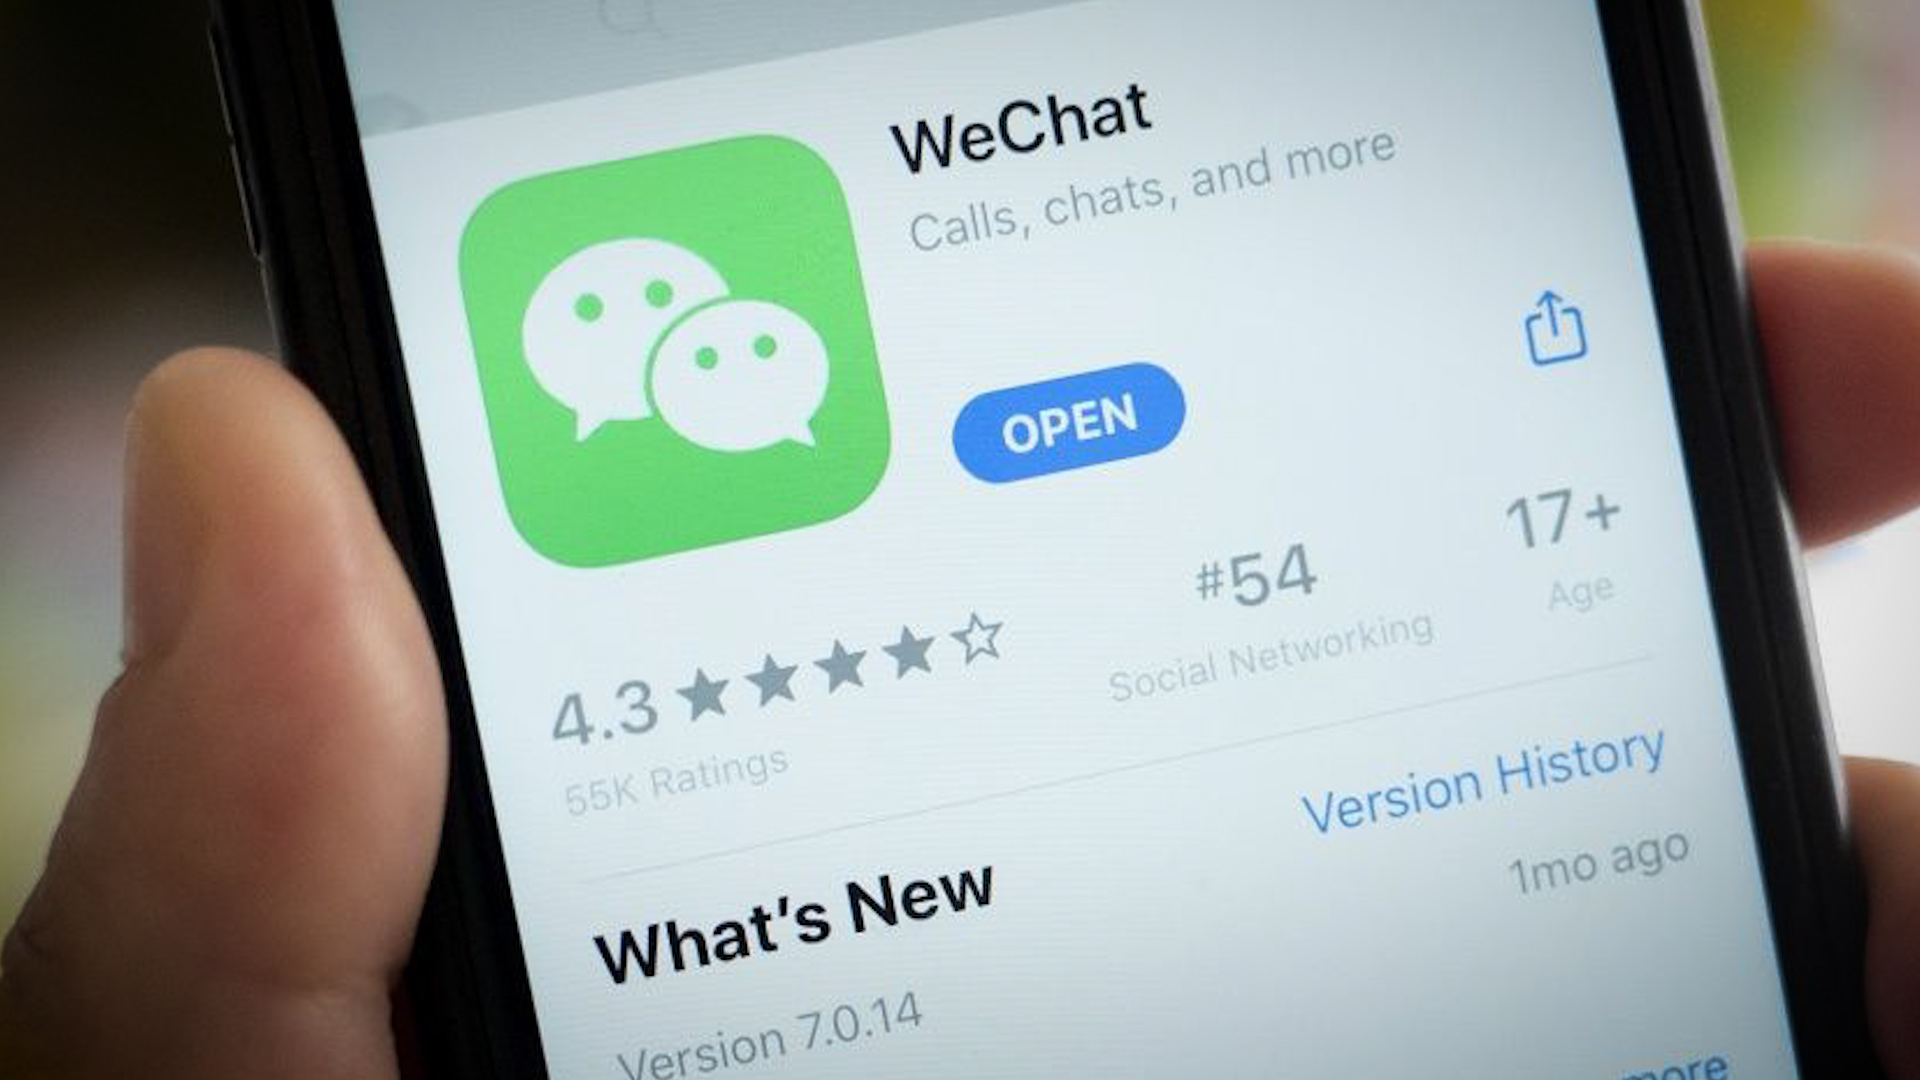 Federal court issues preliminary injunction halting administration's ban of Chinese app WeChat